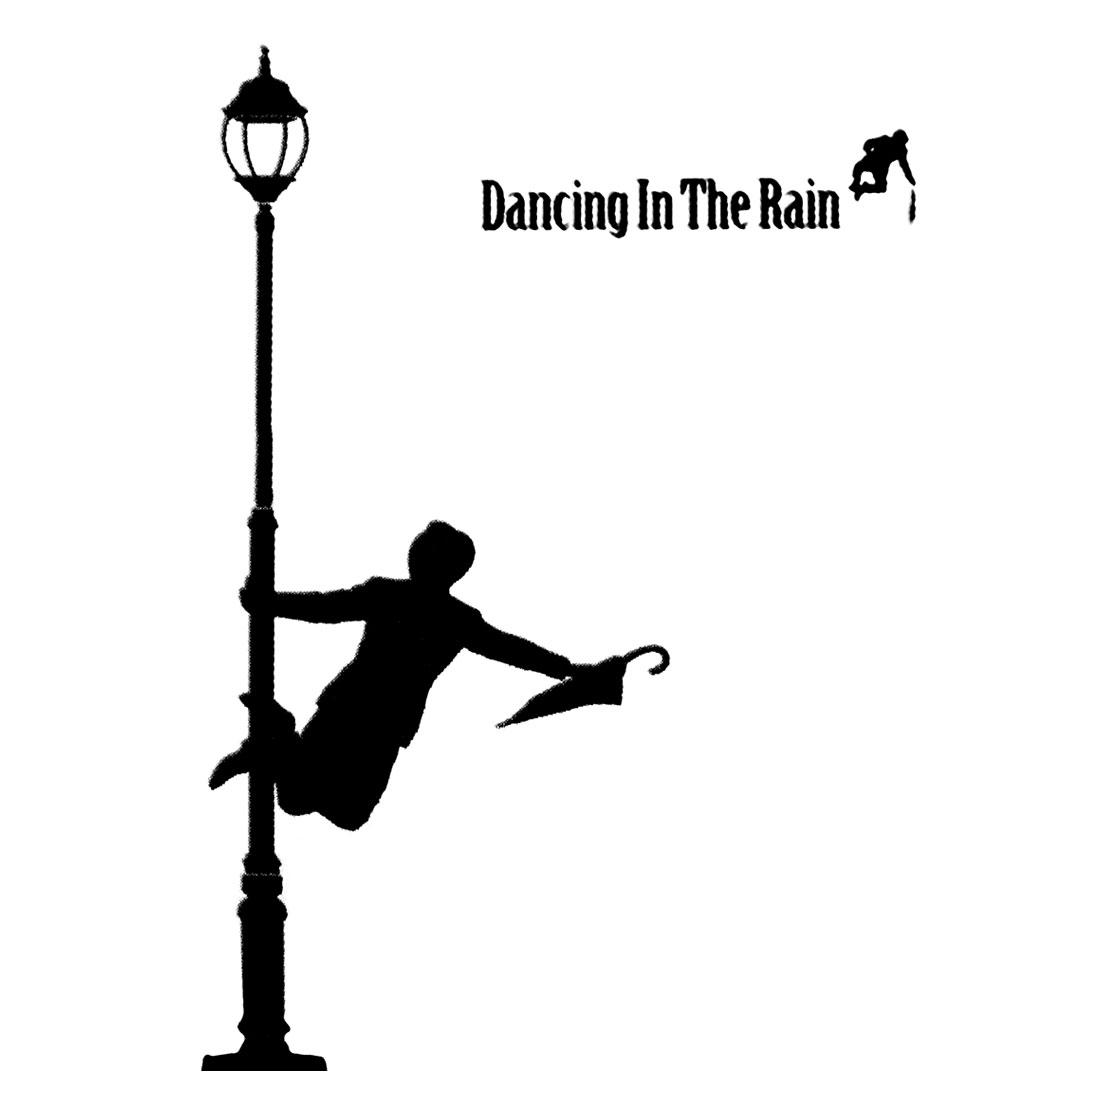 Dance In The Rain Pattern Removable Wall Sticker Decal Mural Art Decor Black